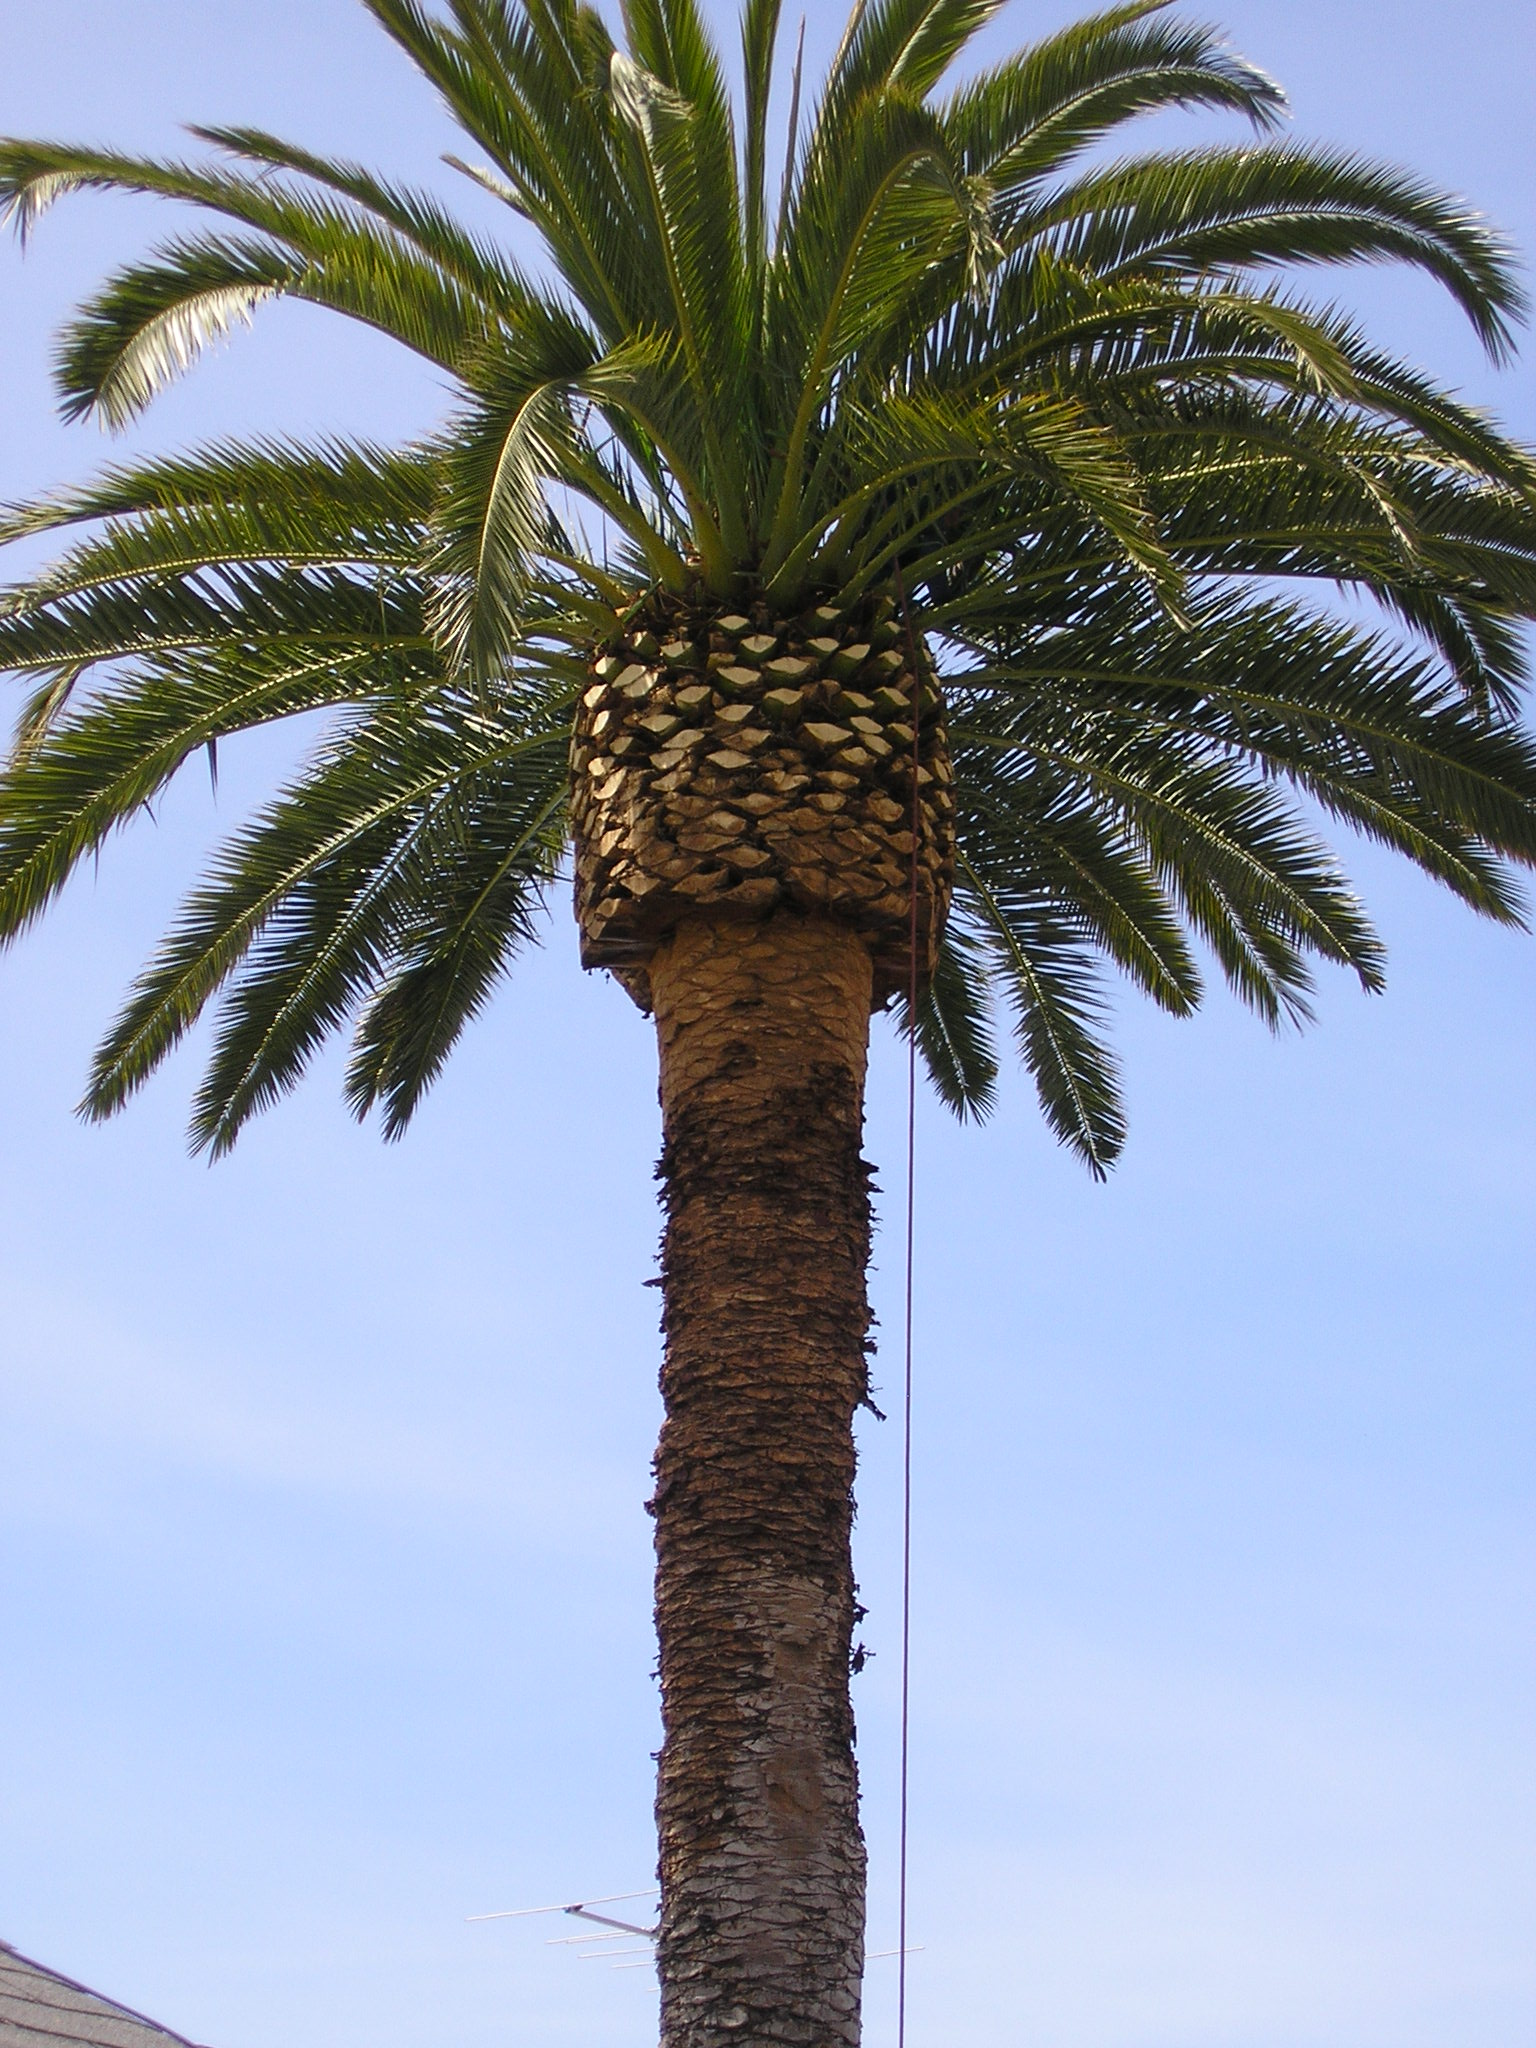 Date Palm on San Luis Street, Pismo Beach